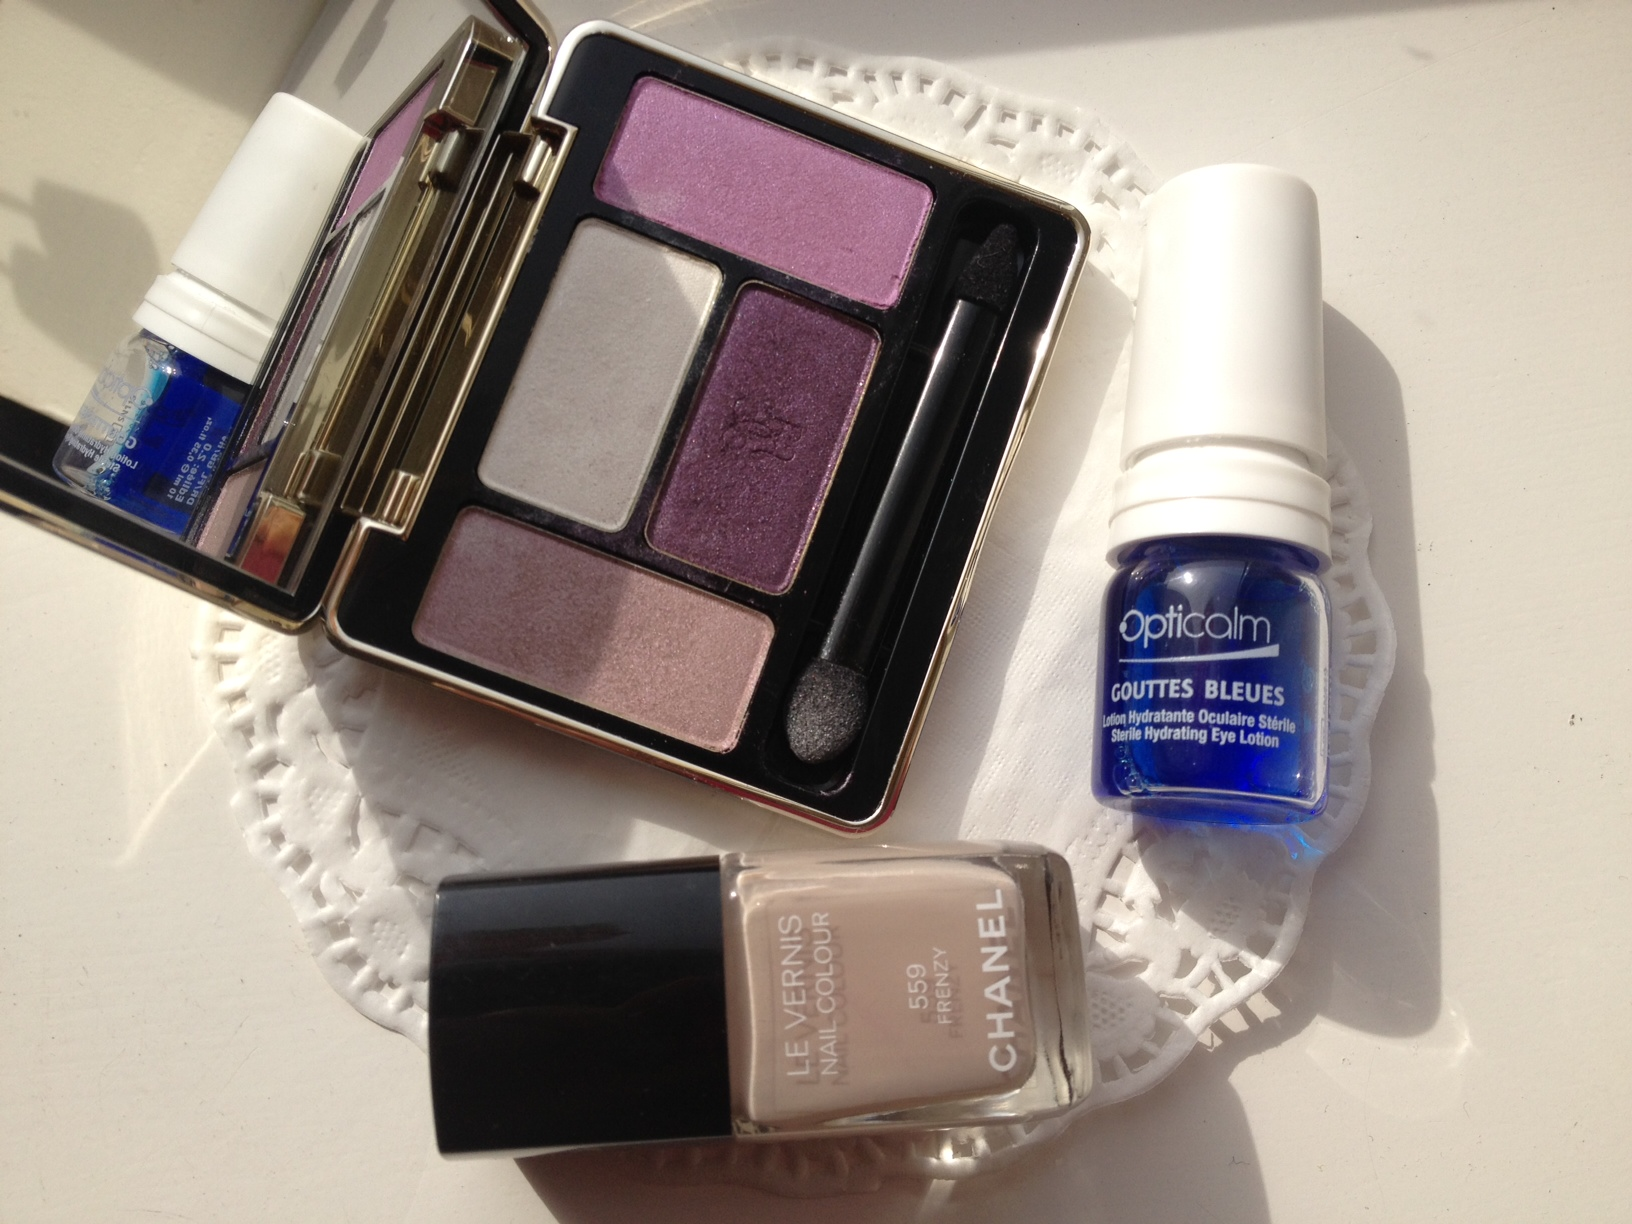 Chanel Frenzy, French blue eyedrops, Guerlain eyeshadow palette Attrape Coer